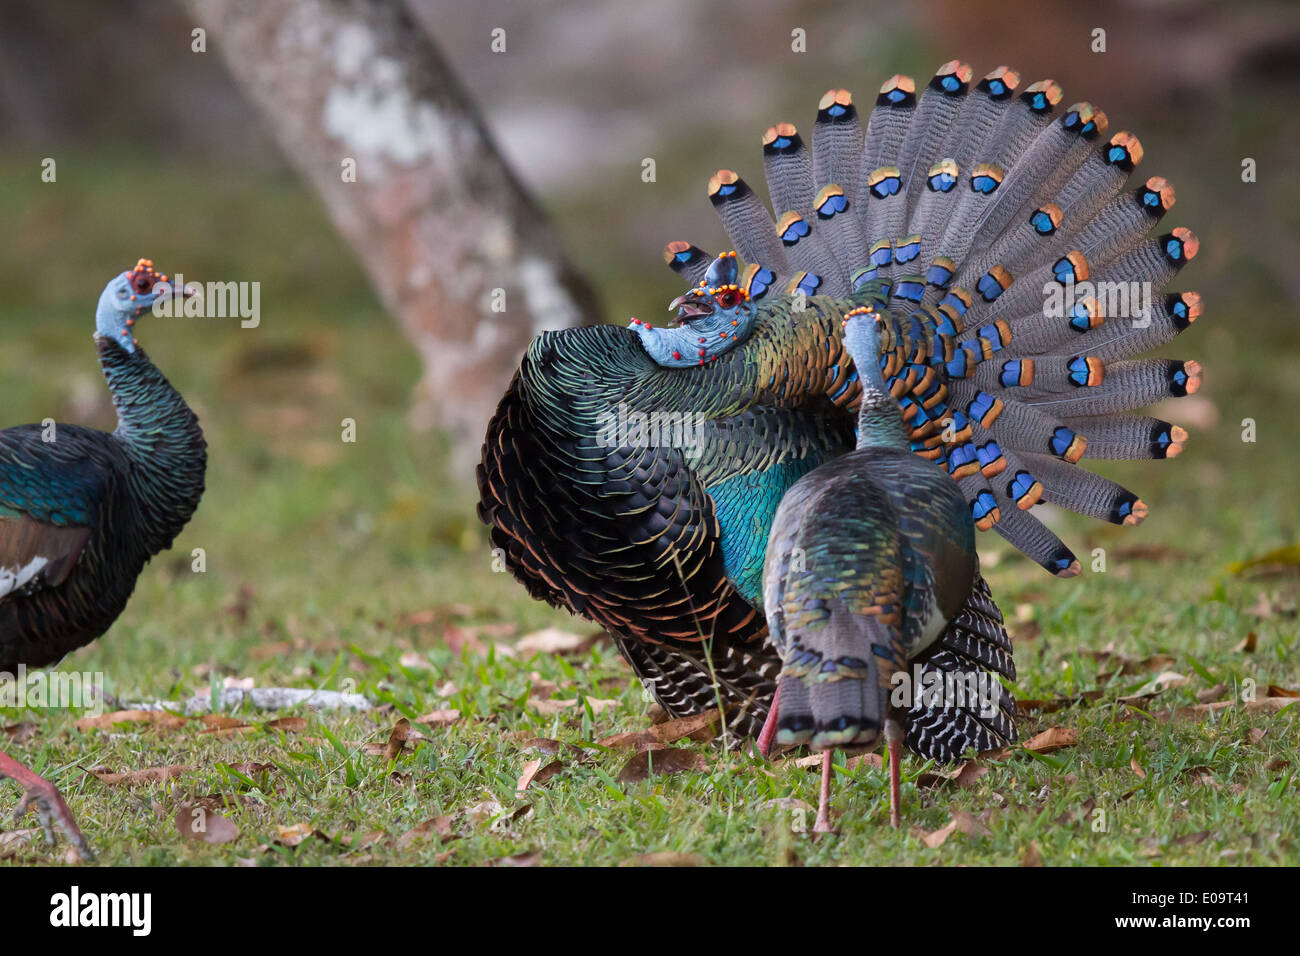 male Ocellated Turkey (Meleagris ocellata) displaying to two females - Stock Image